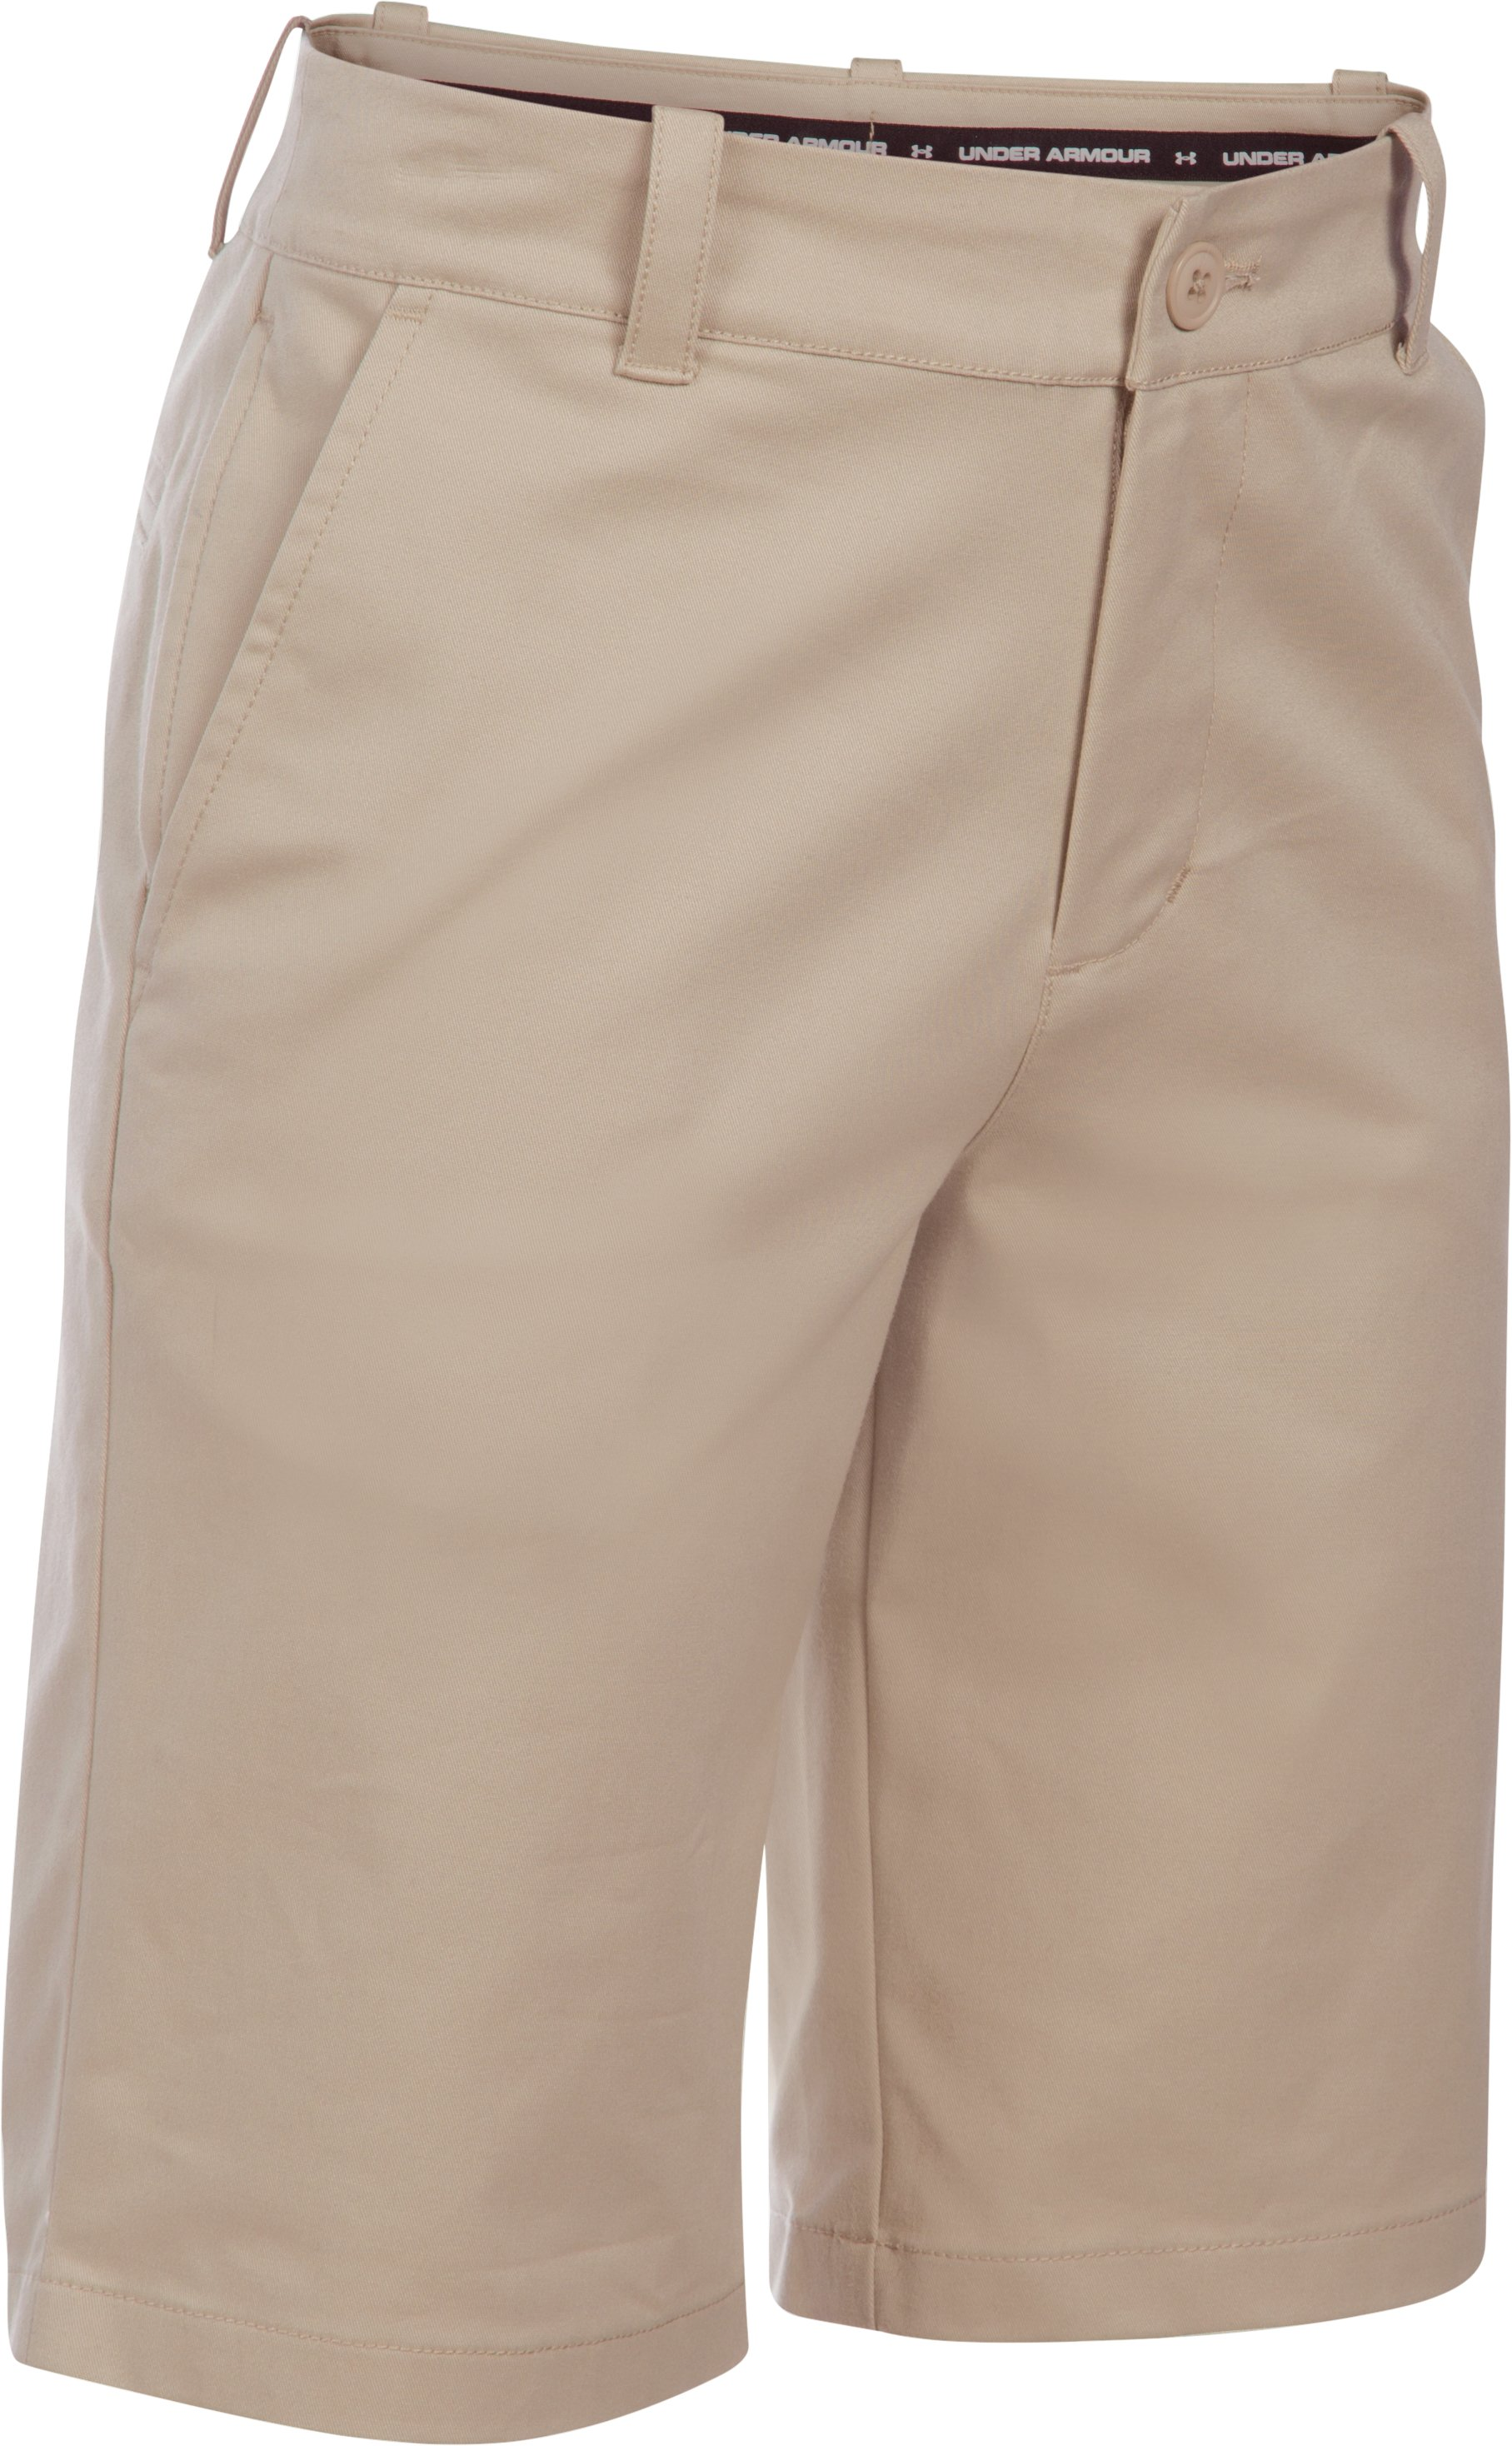 Boys UA Uniform Chino Shorts, Desert Sand